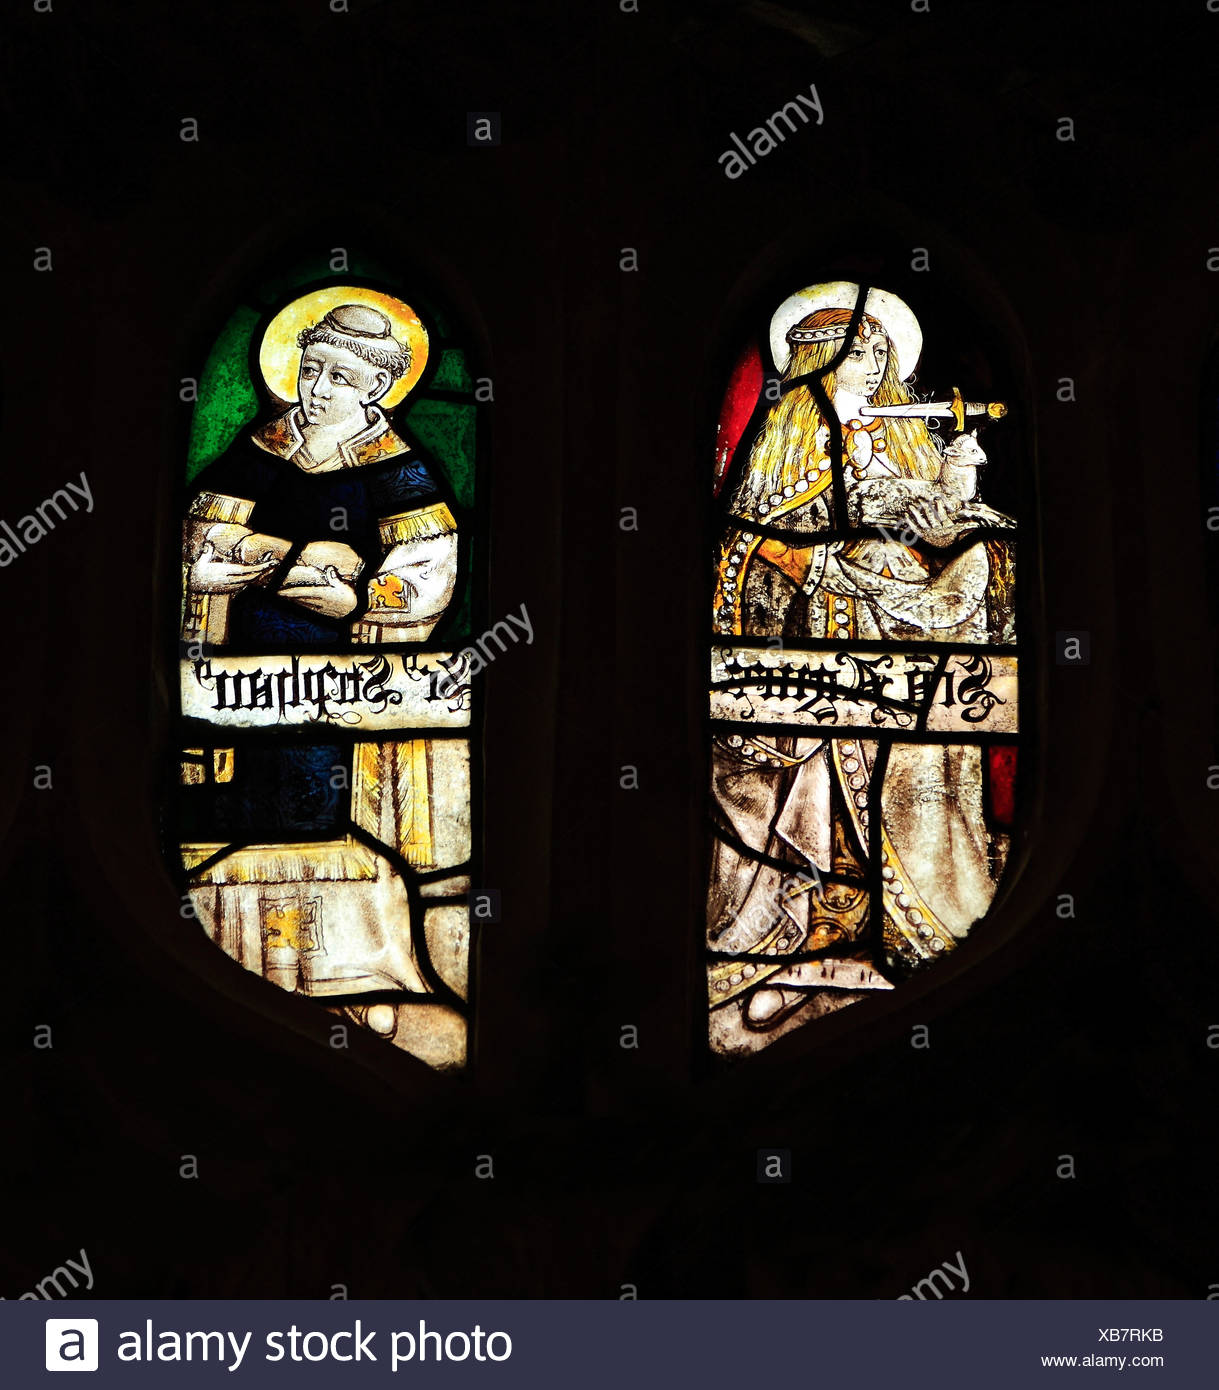 Medieval stained glass, St. Agnes with dagger at her neck, holding a lamb, St. Stephen holding stones of martyrdom, Sandringham - Stock Image